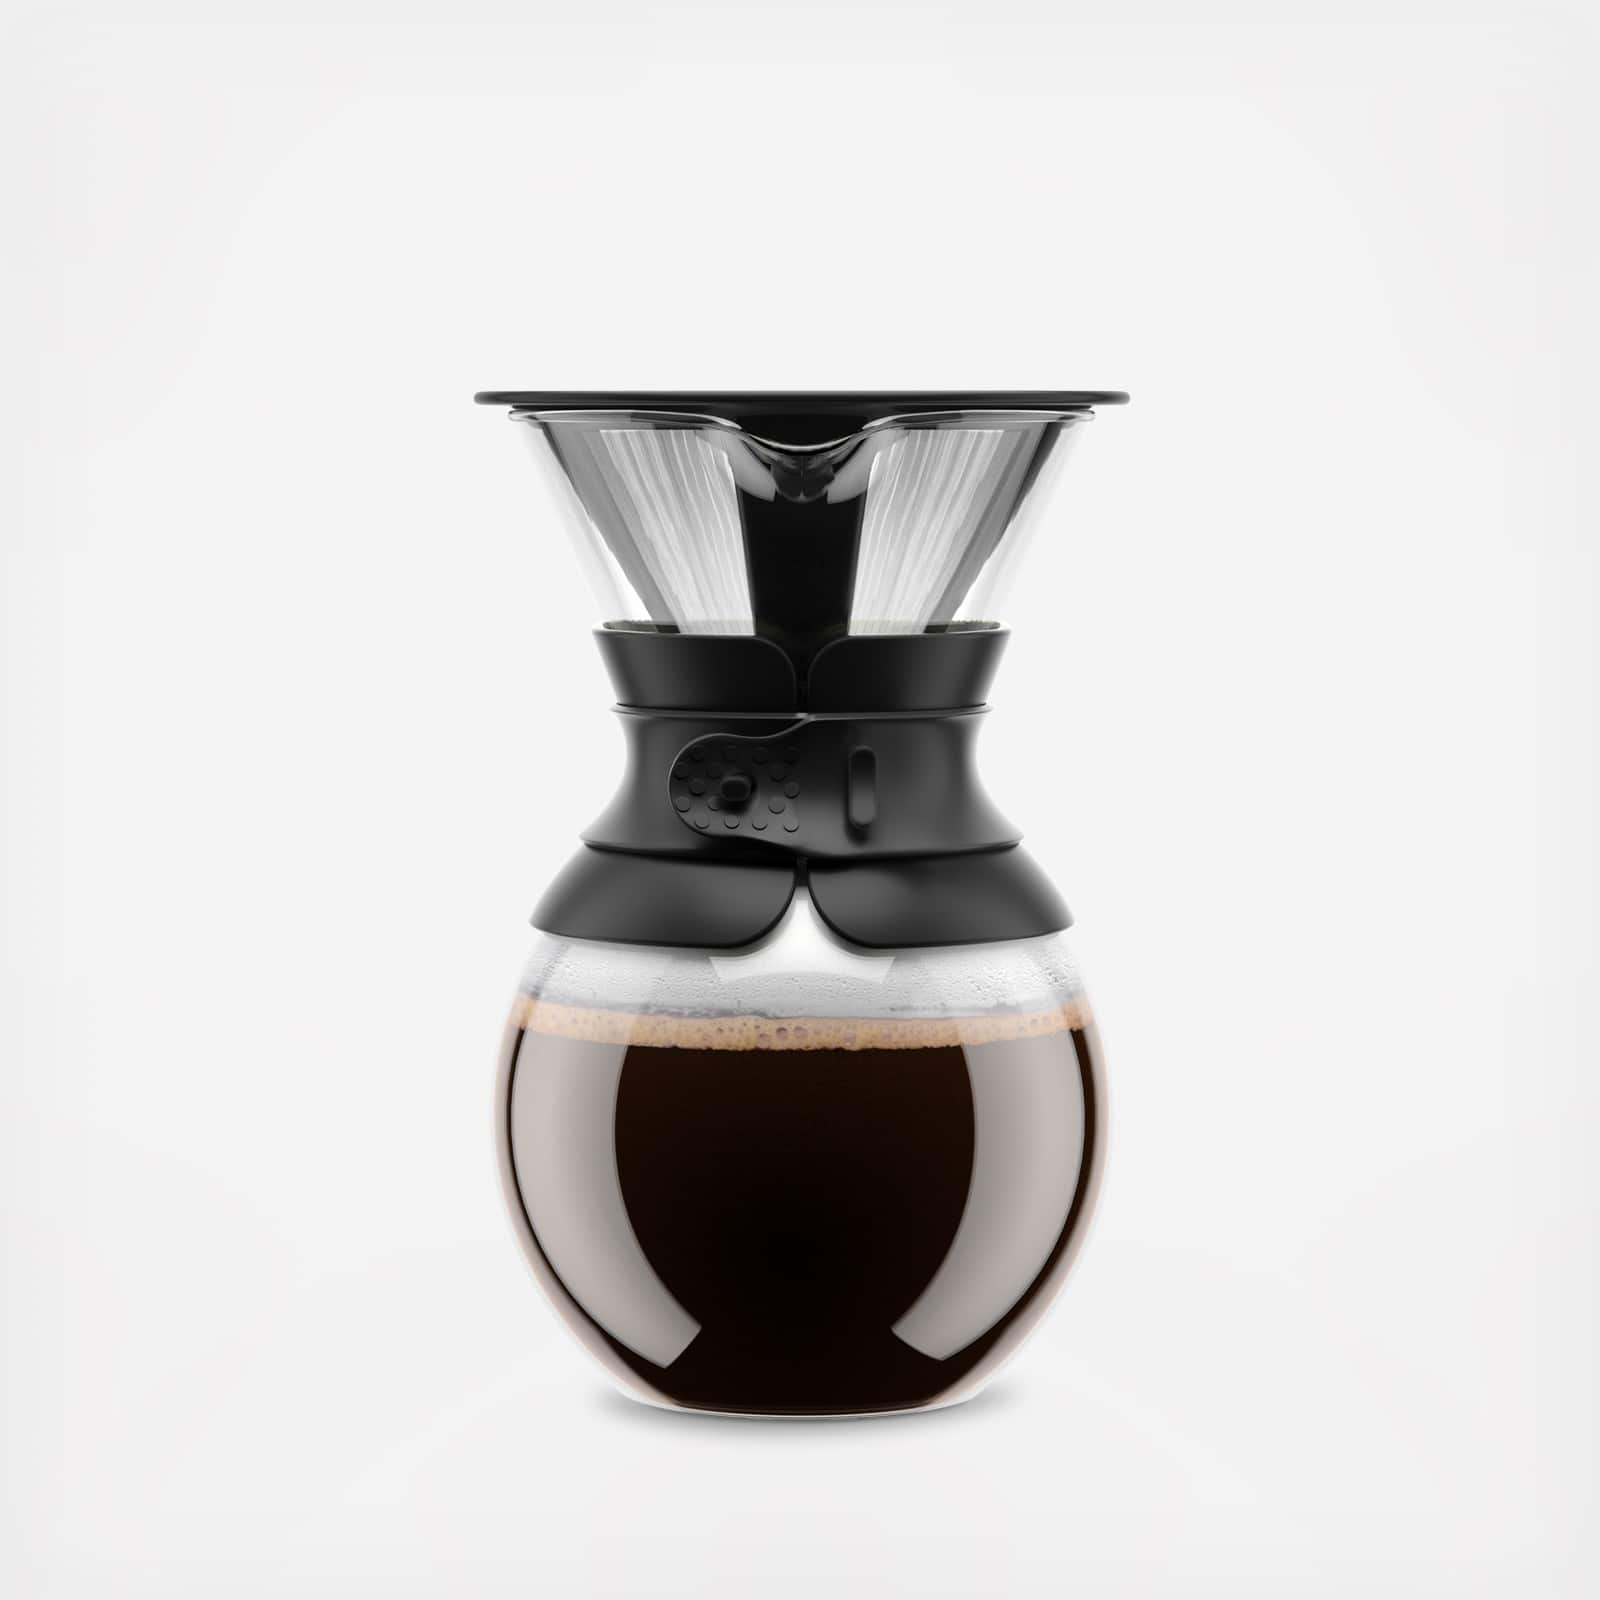 34oz Bodum Pour-Over Coffeemaker Rubber or Cork band 20 dollars or less $19.99